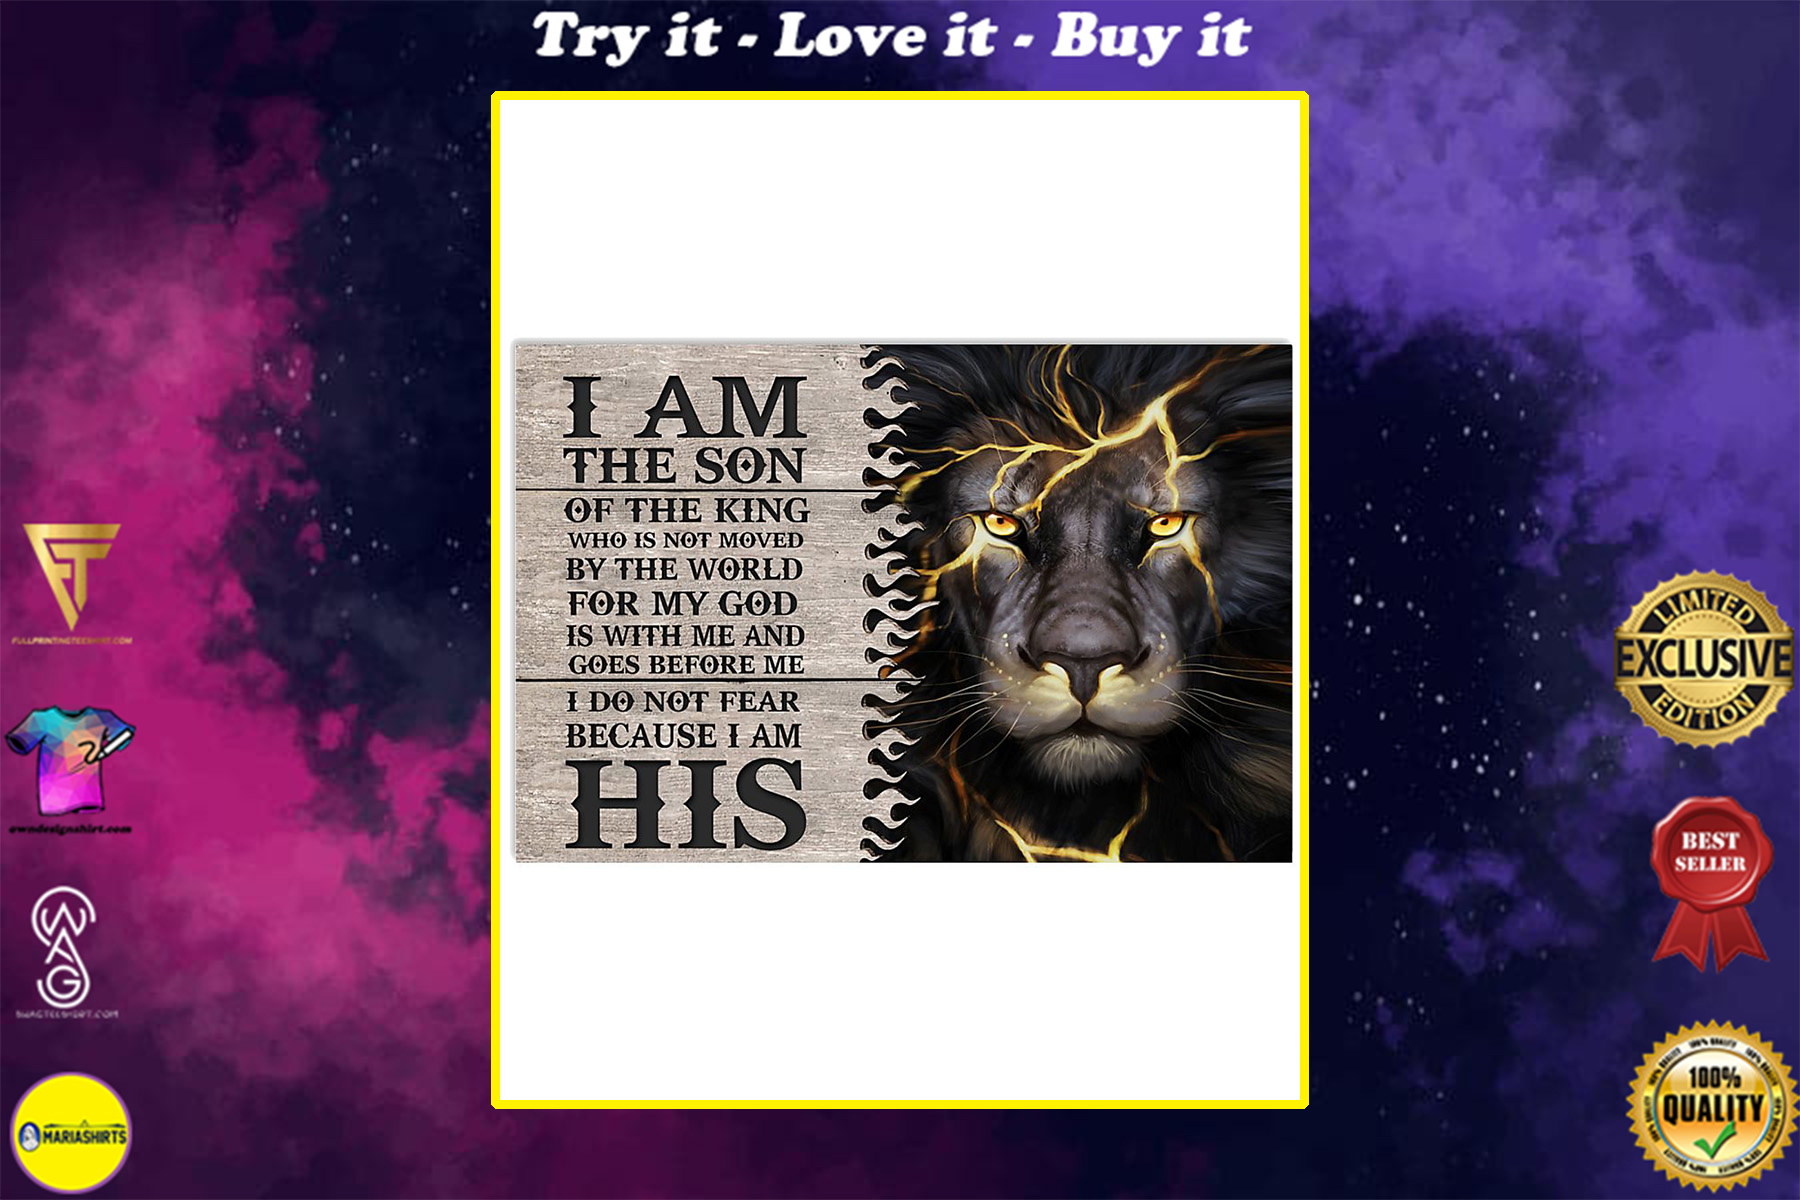 lion i am the son or a king who is not moved by the world for my God is with me poster